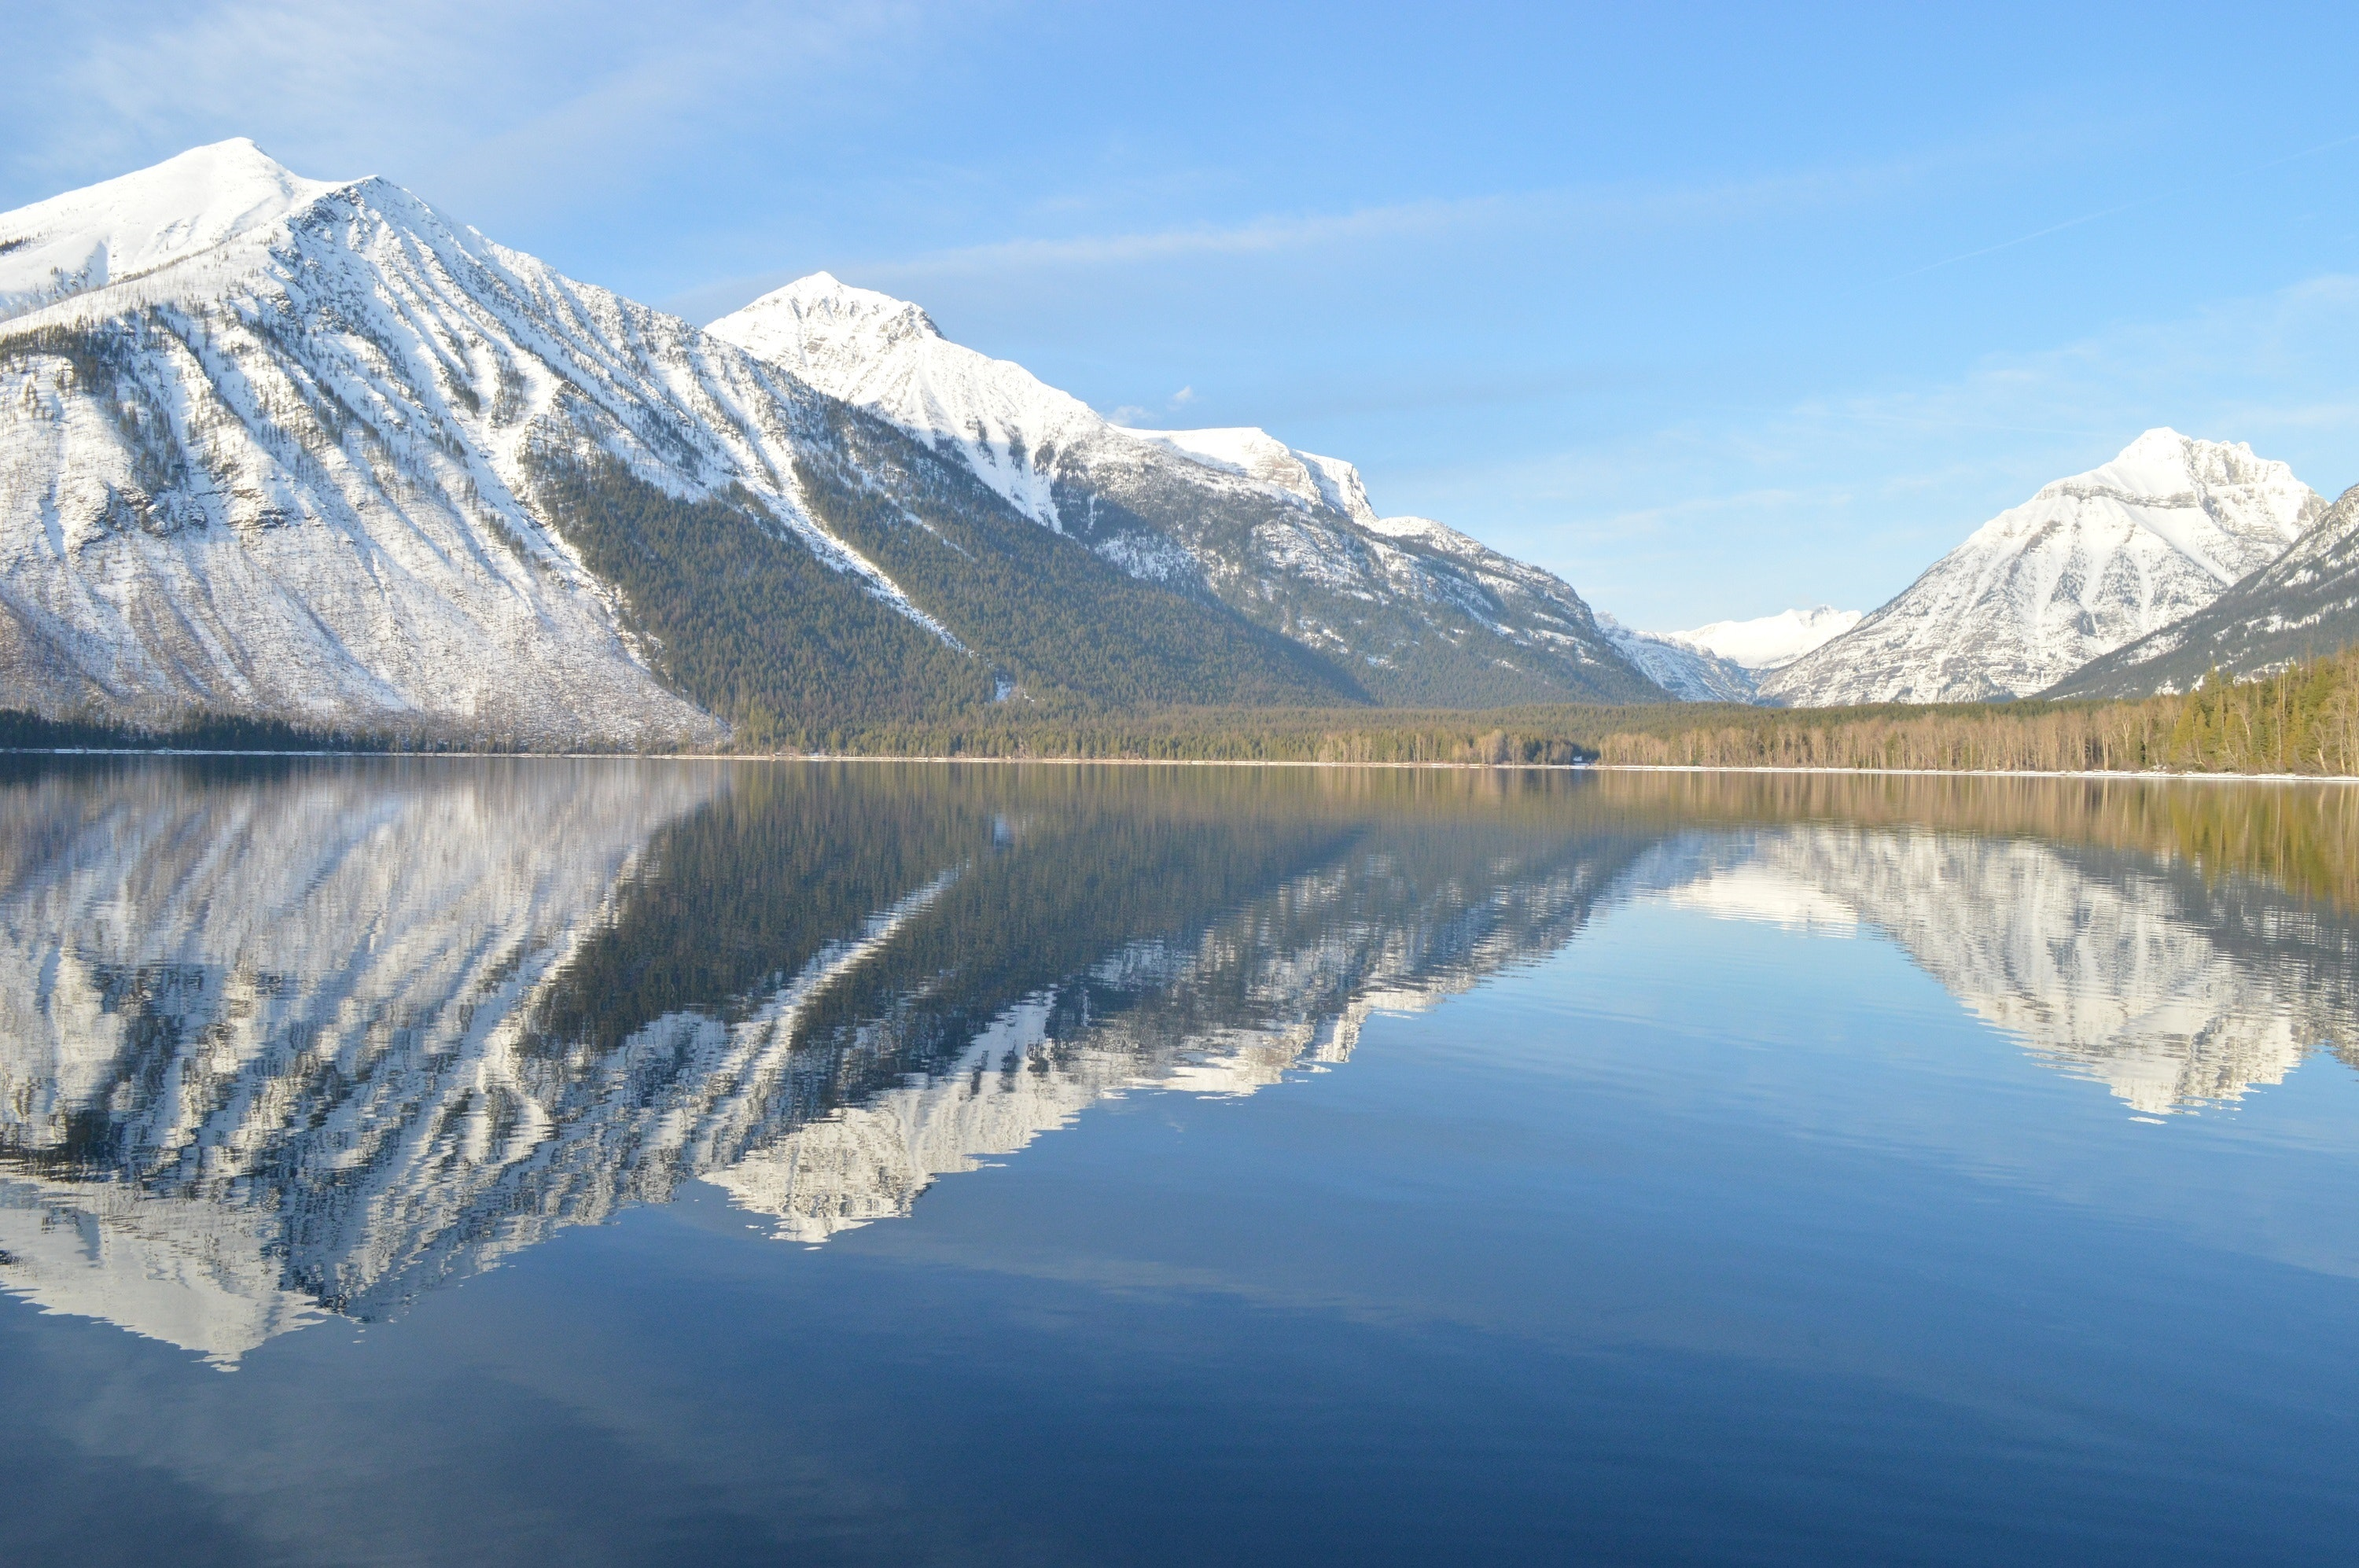 Reflection of Mountains in Lake Against Sky, Alpine, Outdoors, Water, Snowcapped, HQ Photo